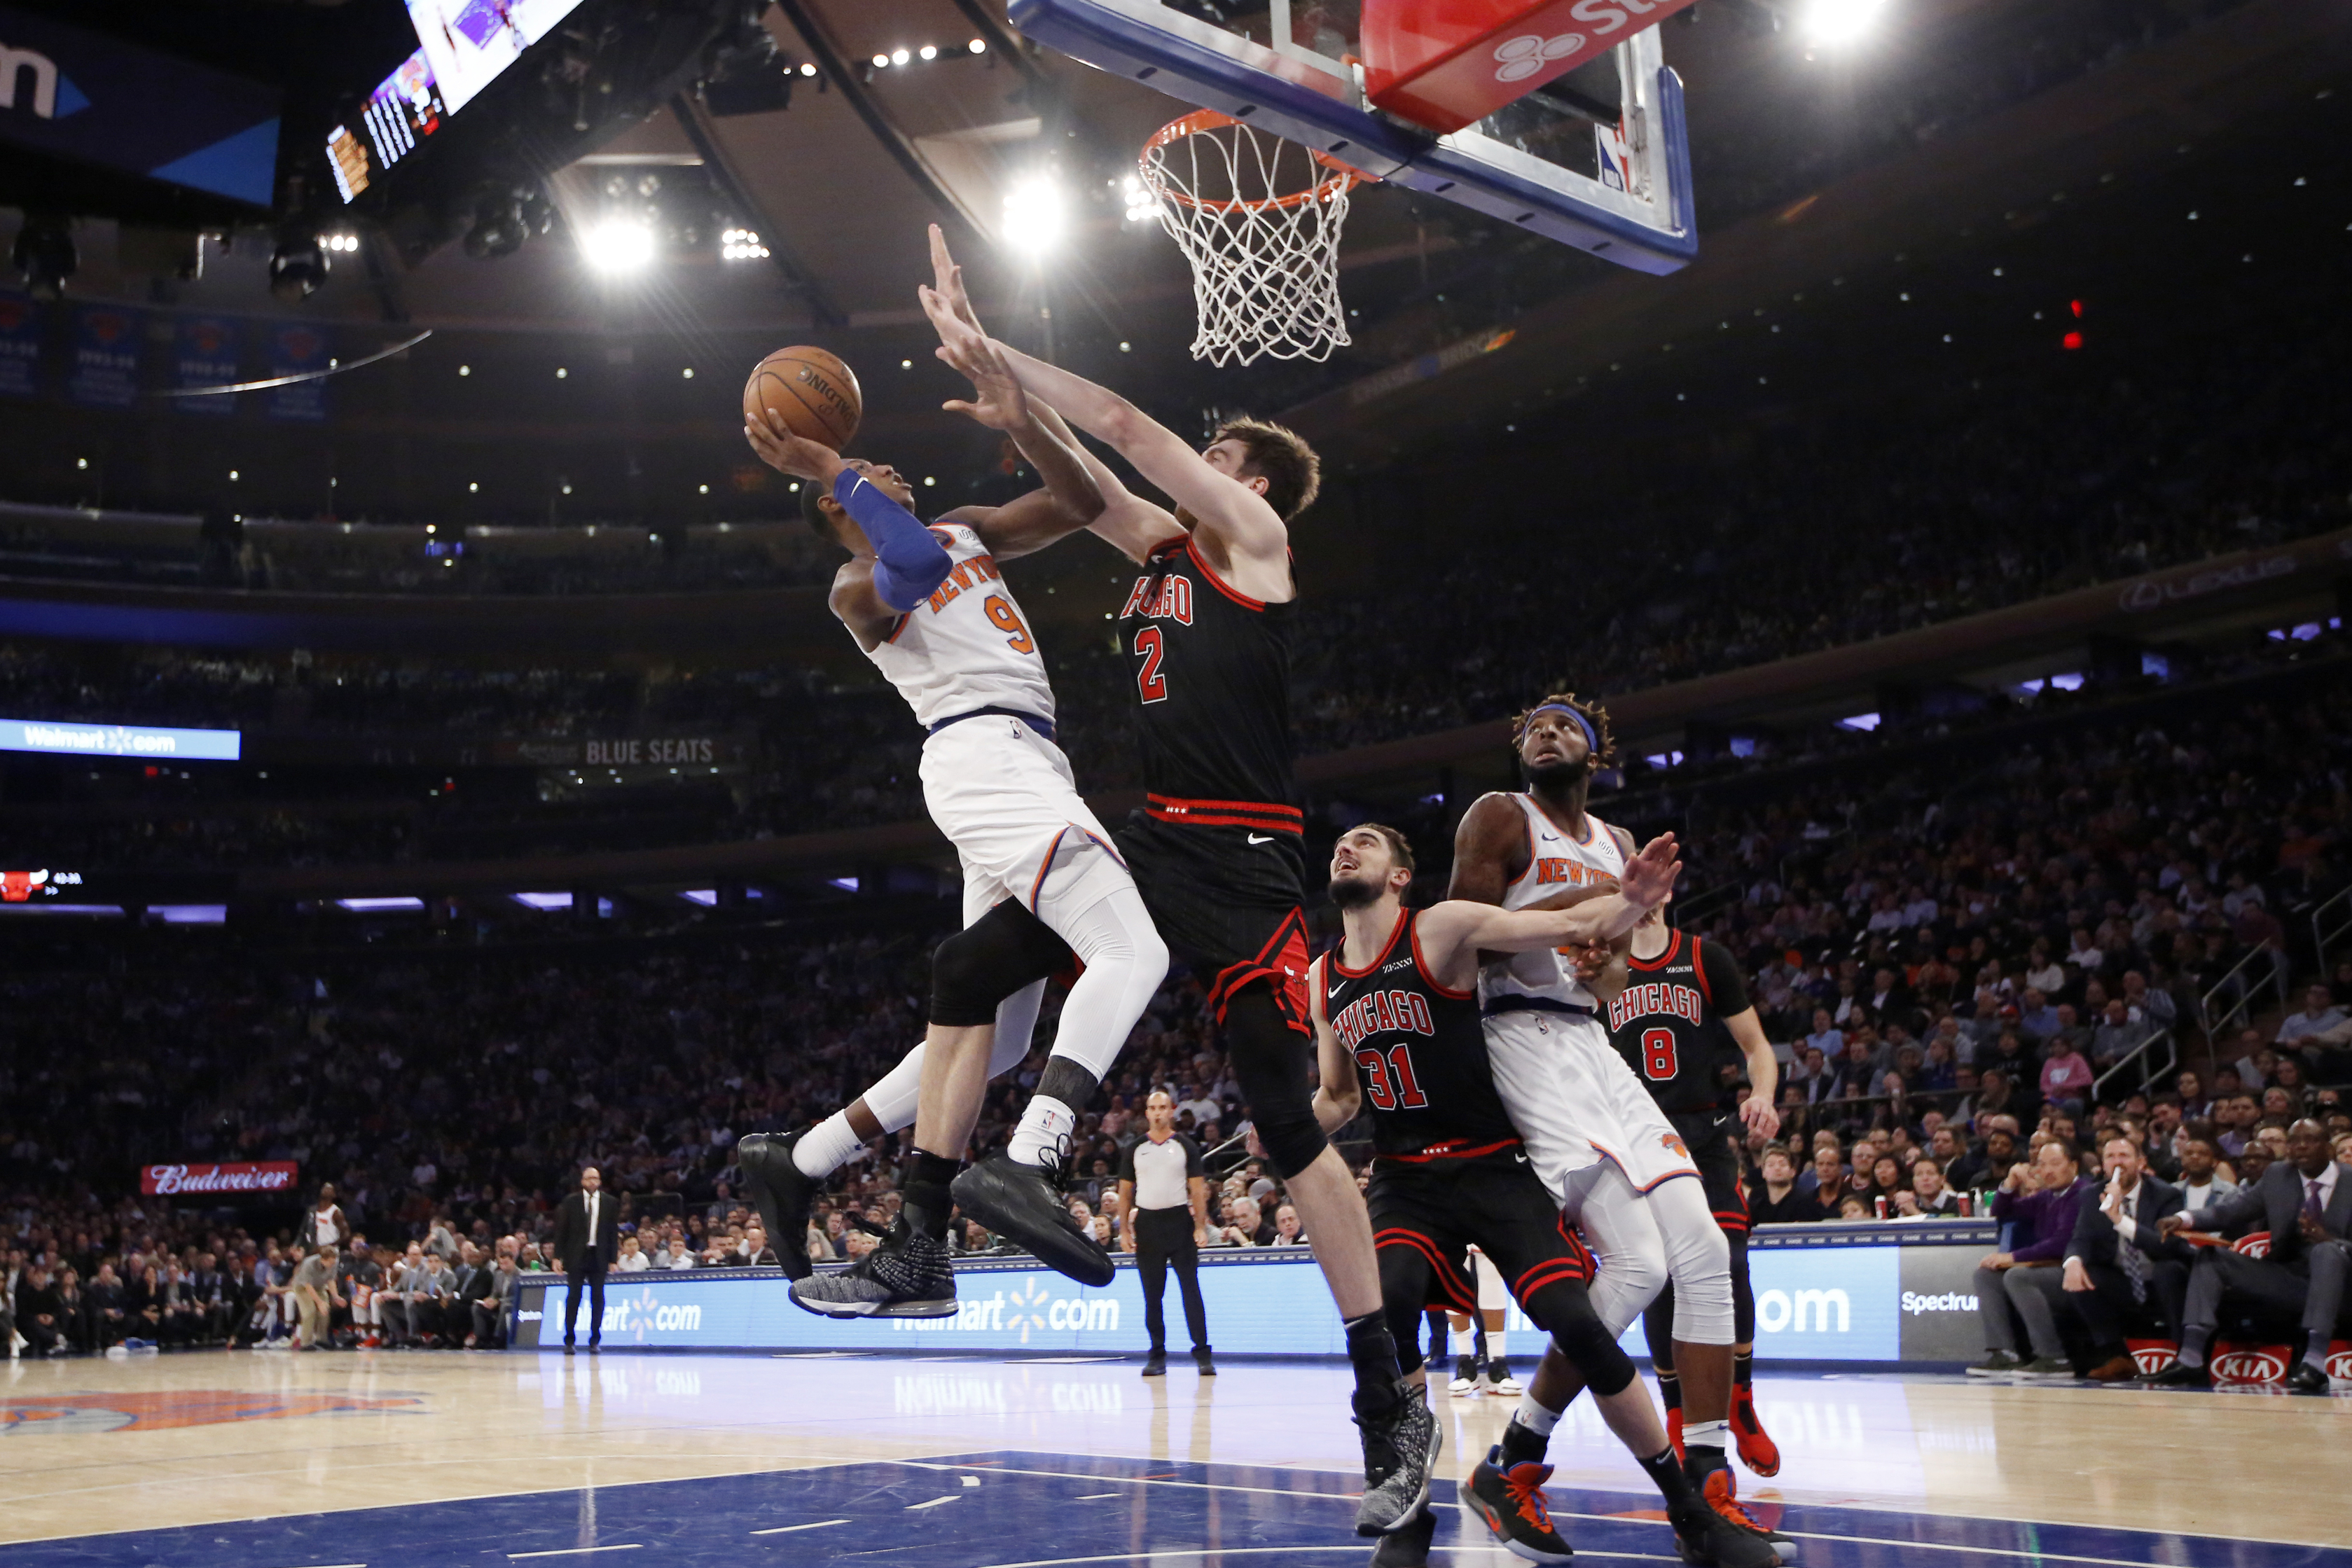 Portis rallies Knicks past Bulls 105-98 for first win